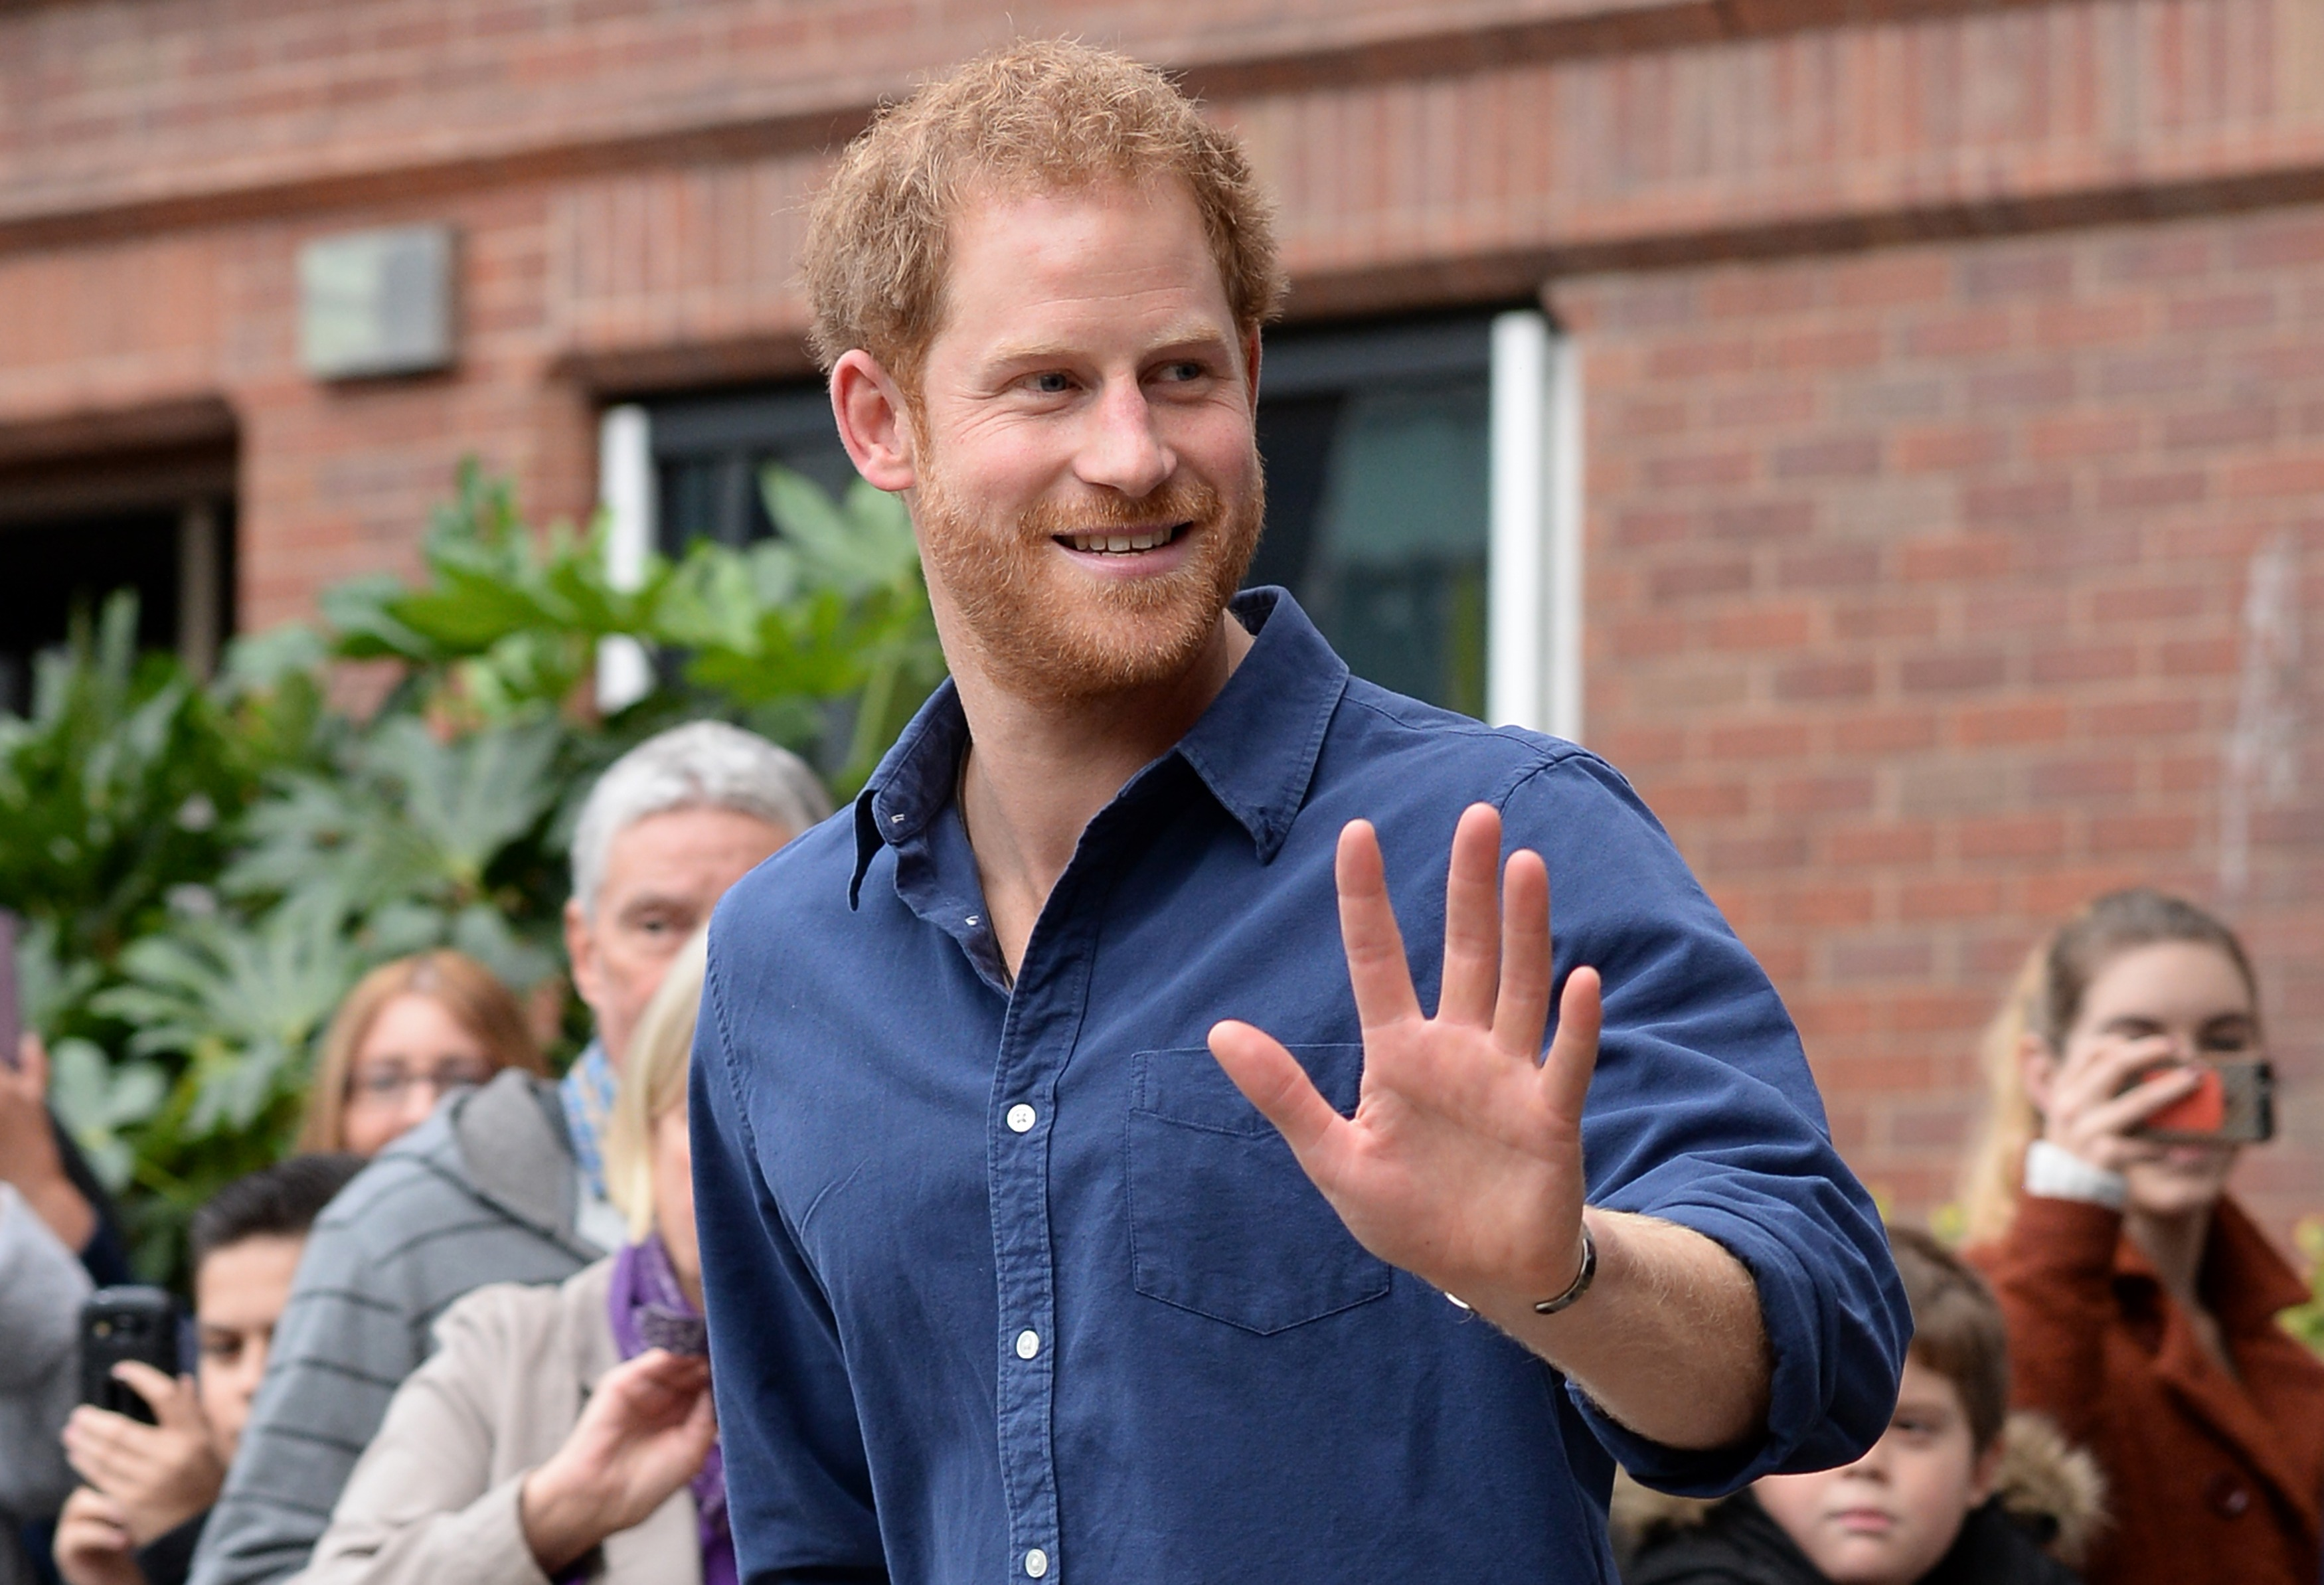 Prince Harry waves as he leaves Nottingham's new Central Police Station in Nottingham, England on October 26, 2016. (Photo by Joe Giddins - WPA Pool/Getty Images)